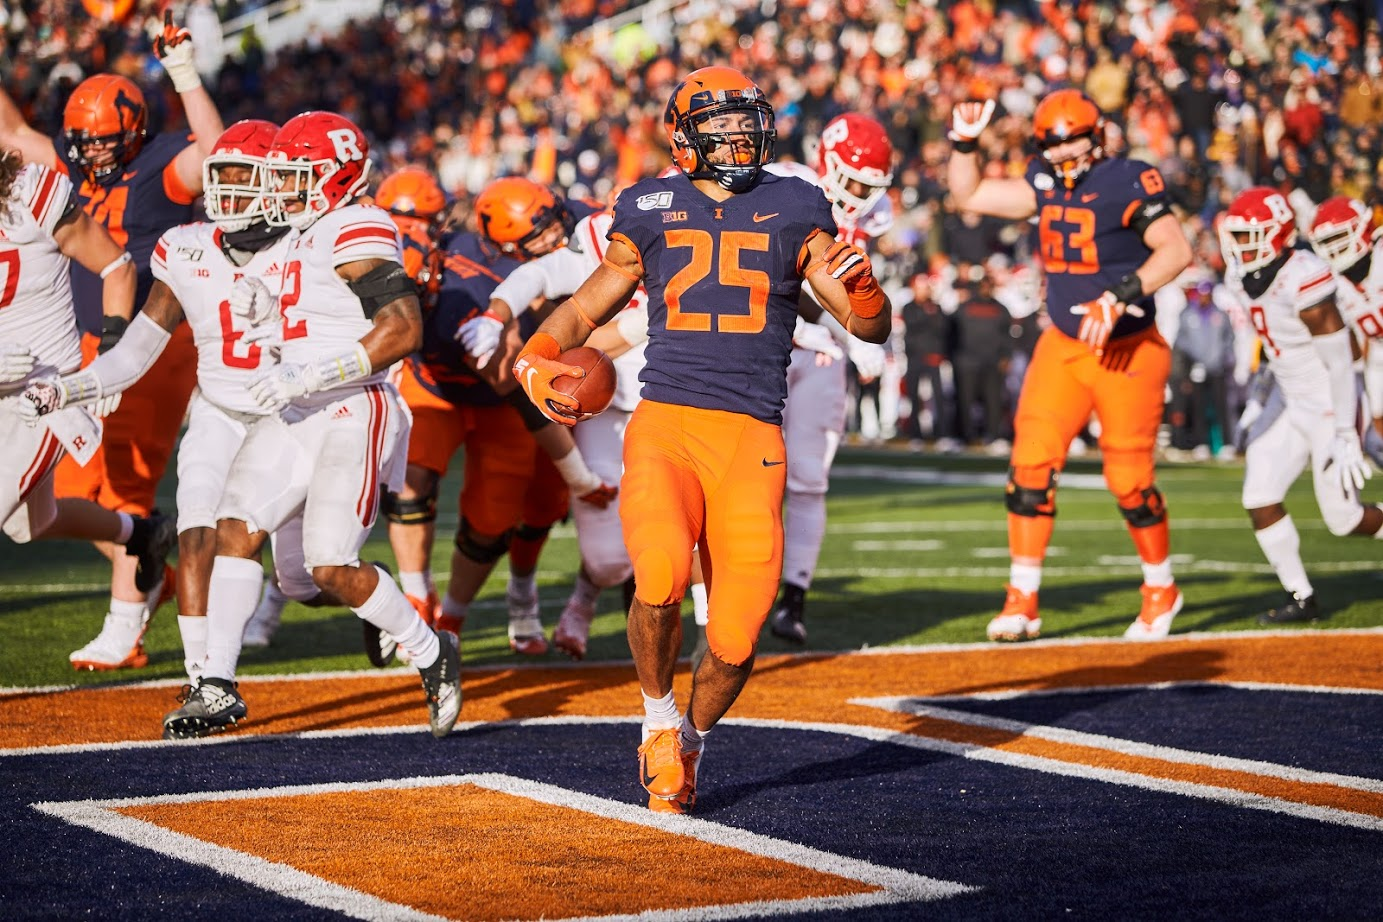 Running back Dre Brown crosses the goal line for a touchdown during the Illini's game against the Scarlet Knights at Memorial Stadium Saturday. The Illini rushed for 204 total yards and won 38-10.